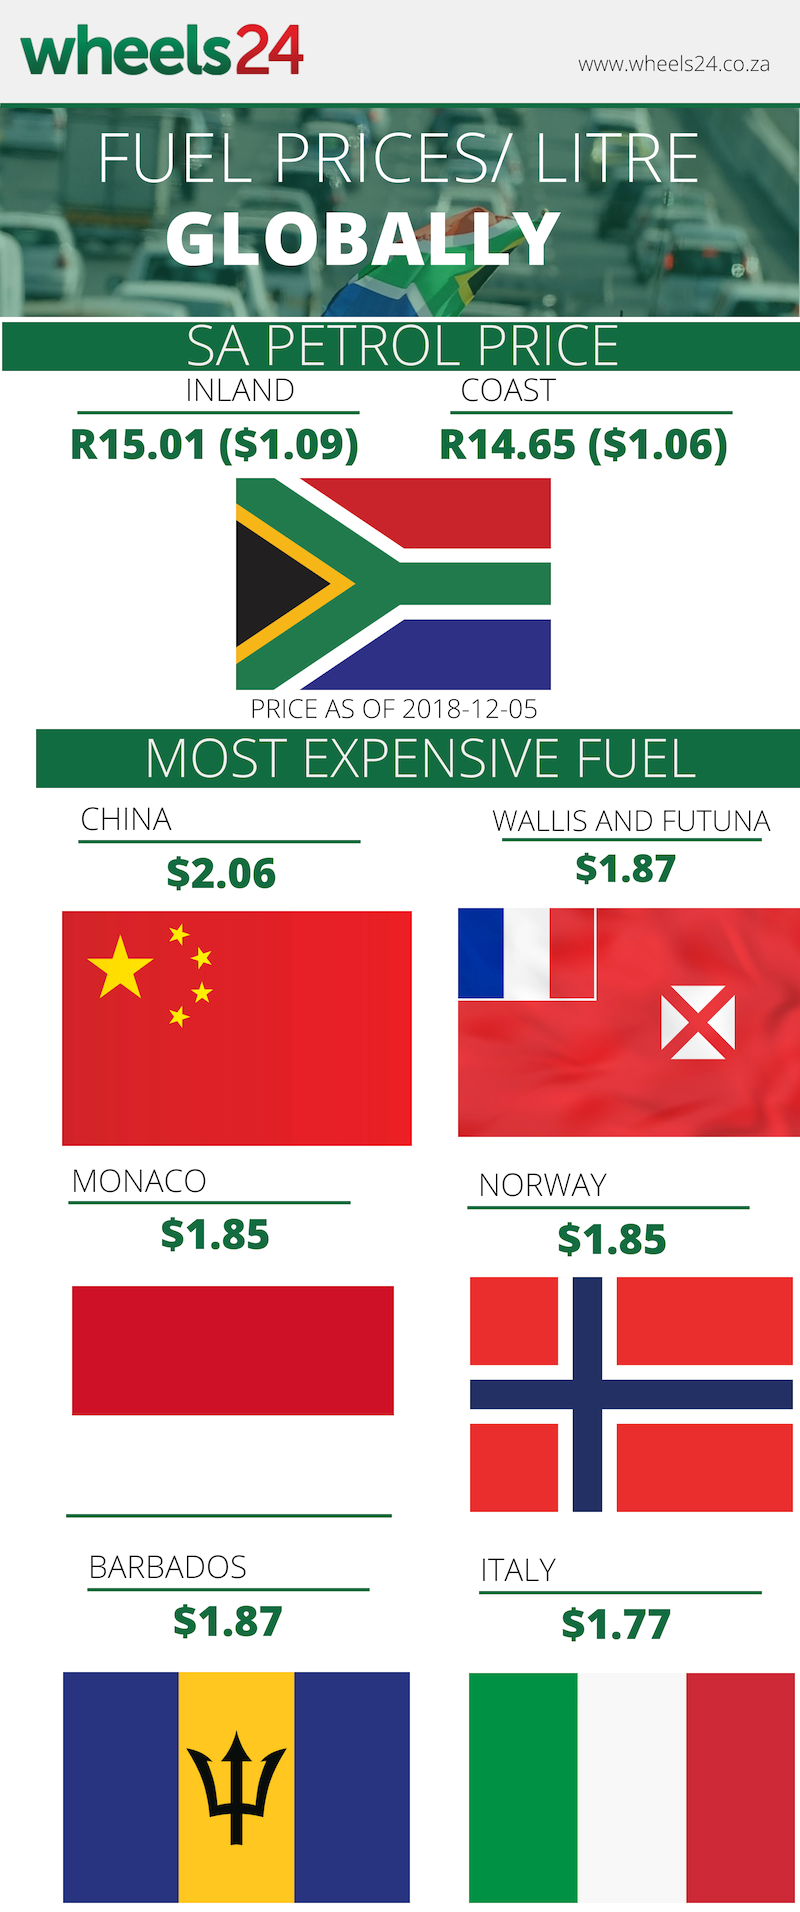 SEE: Most expensive petrol prices in the world | Wheels24